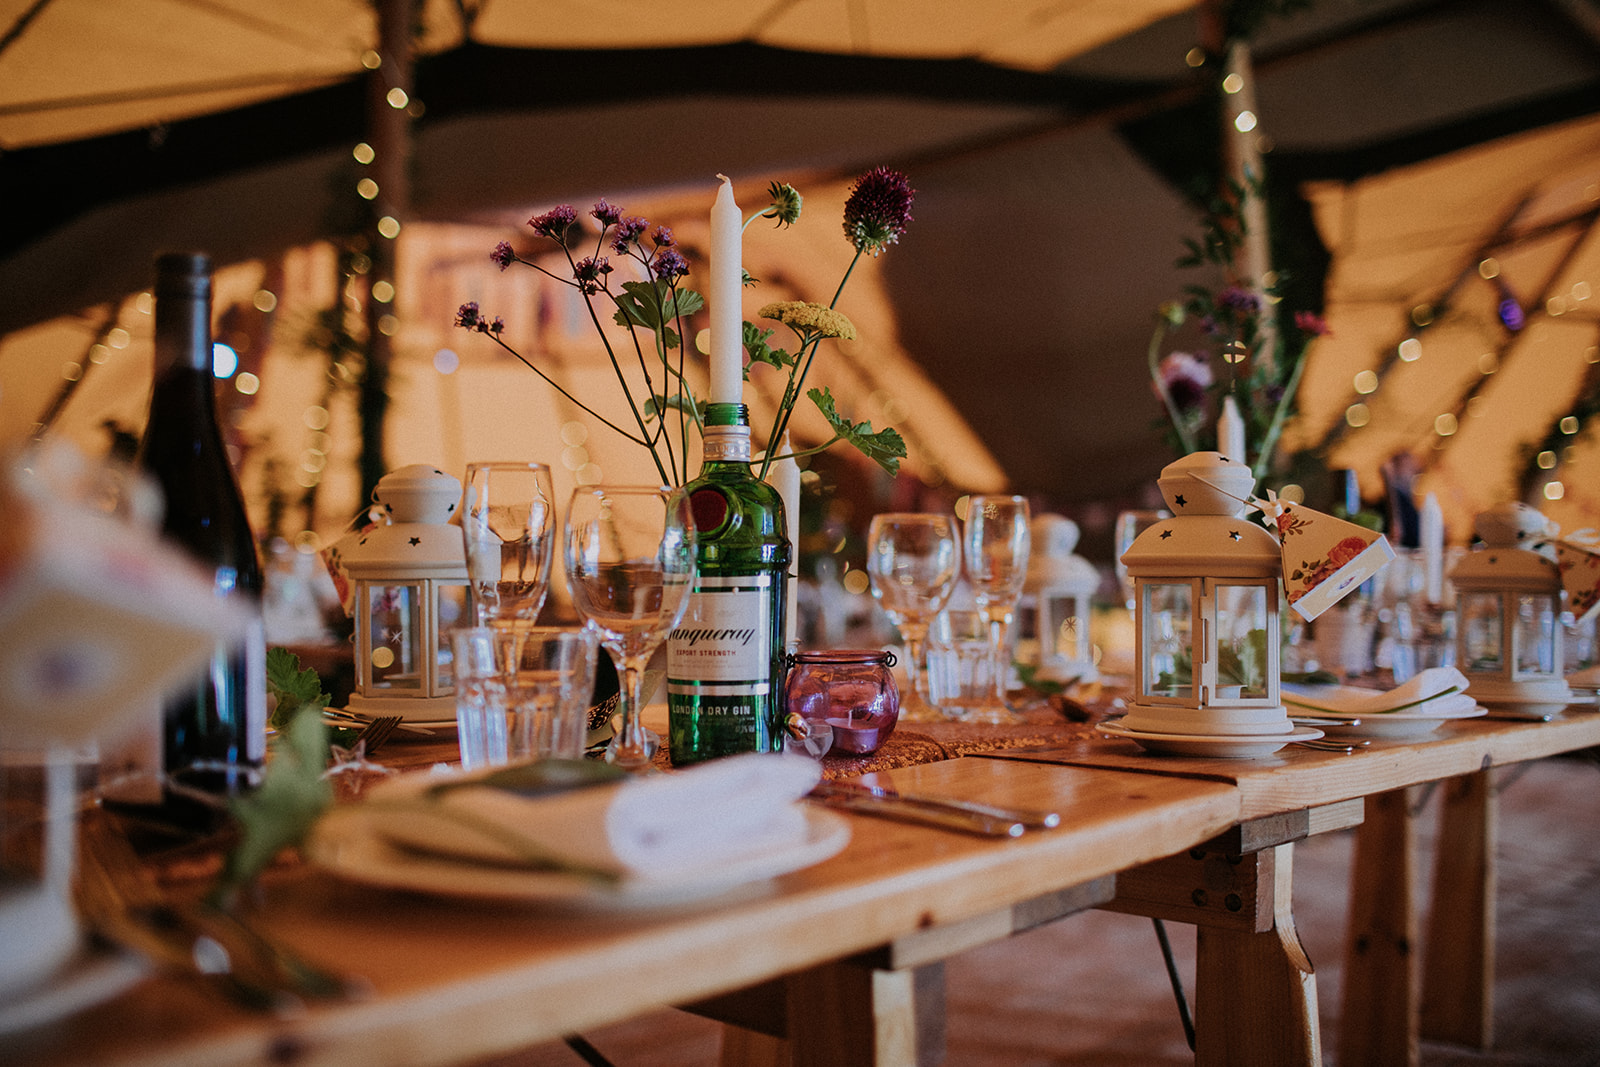 teepee wedding table setup at cattows farm wedding with sami tipi